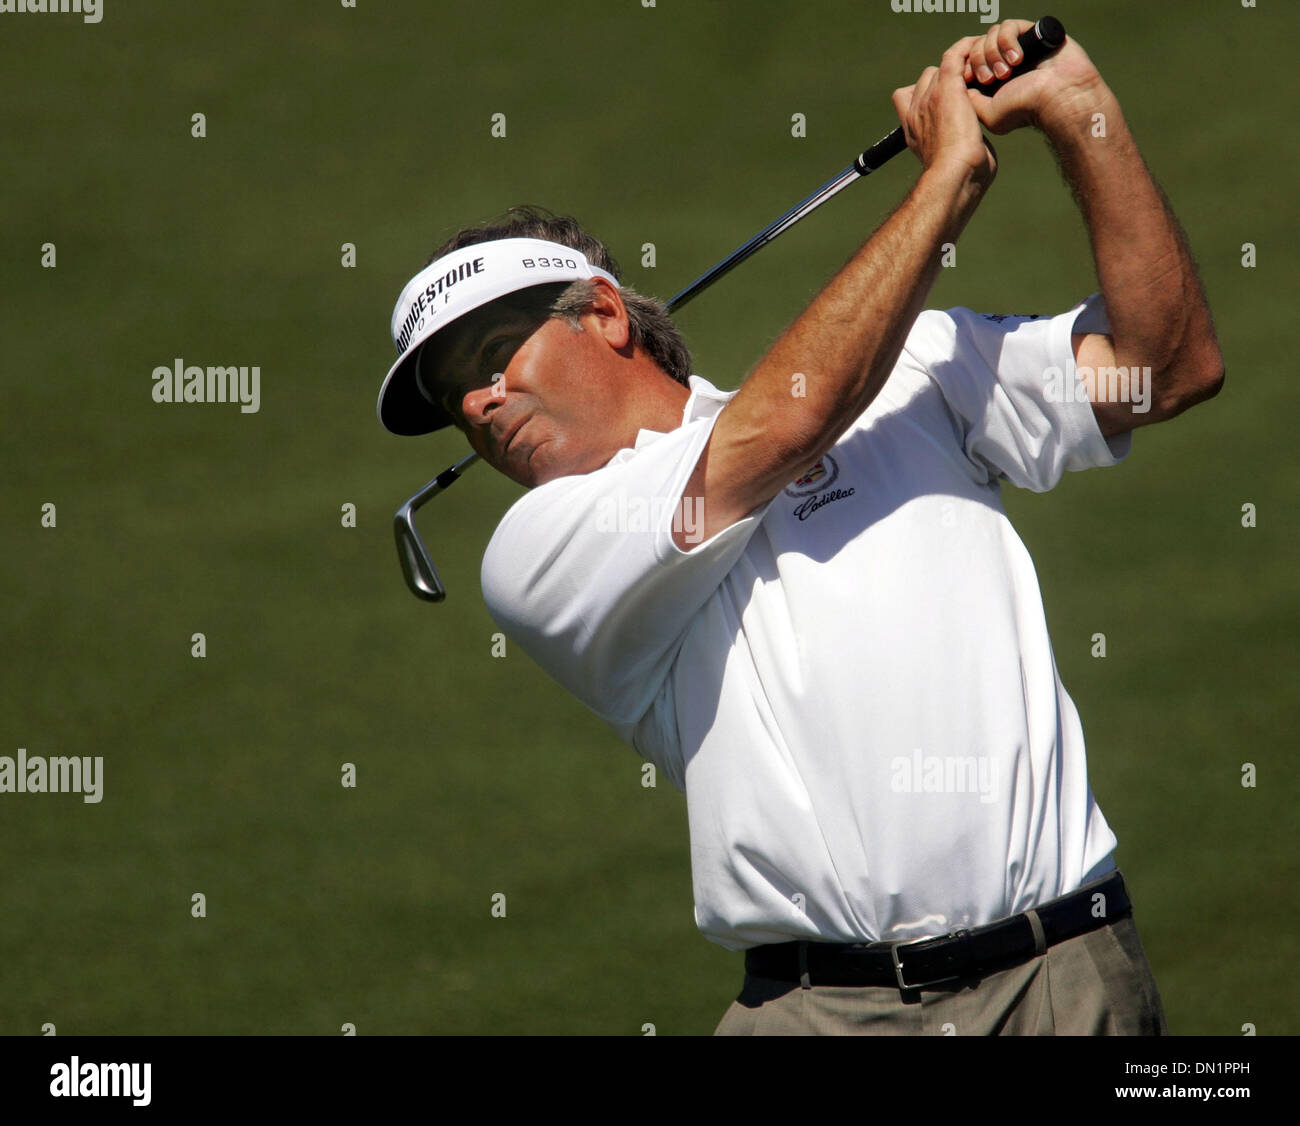 The Honda Classic started Wednesday with Pro-Am tournaments at The Country Club at Mirasol in Palm Beach Gardens. FRED COUPLES hits the ball from the field at the 18th hole Wednesday morning in the 2006 Honda Classic Pro-Am Tournament. - Stock Image